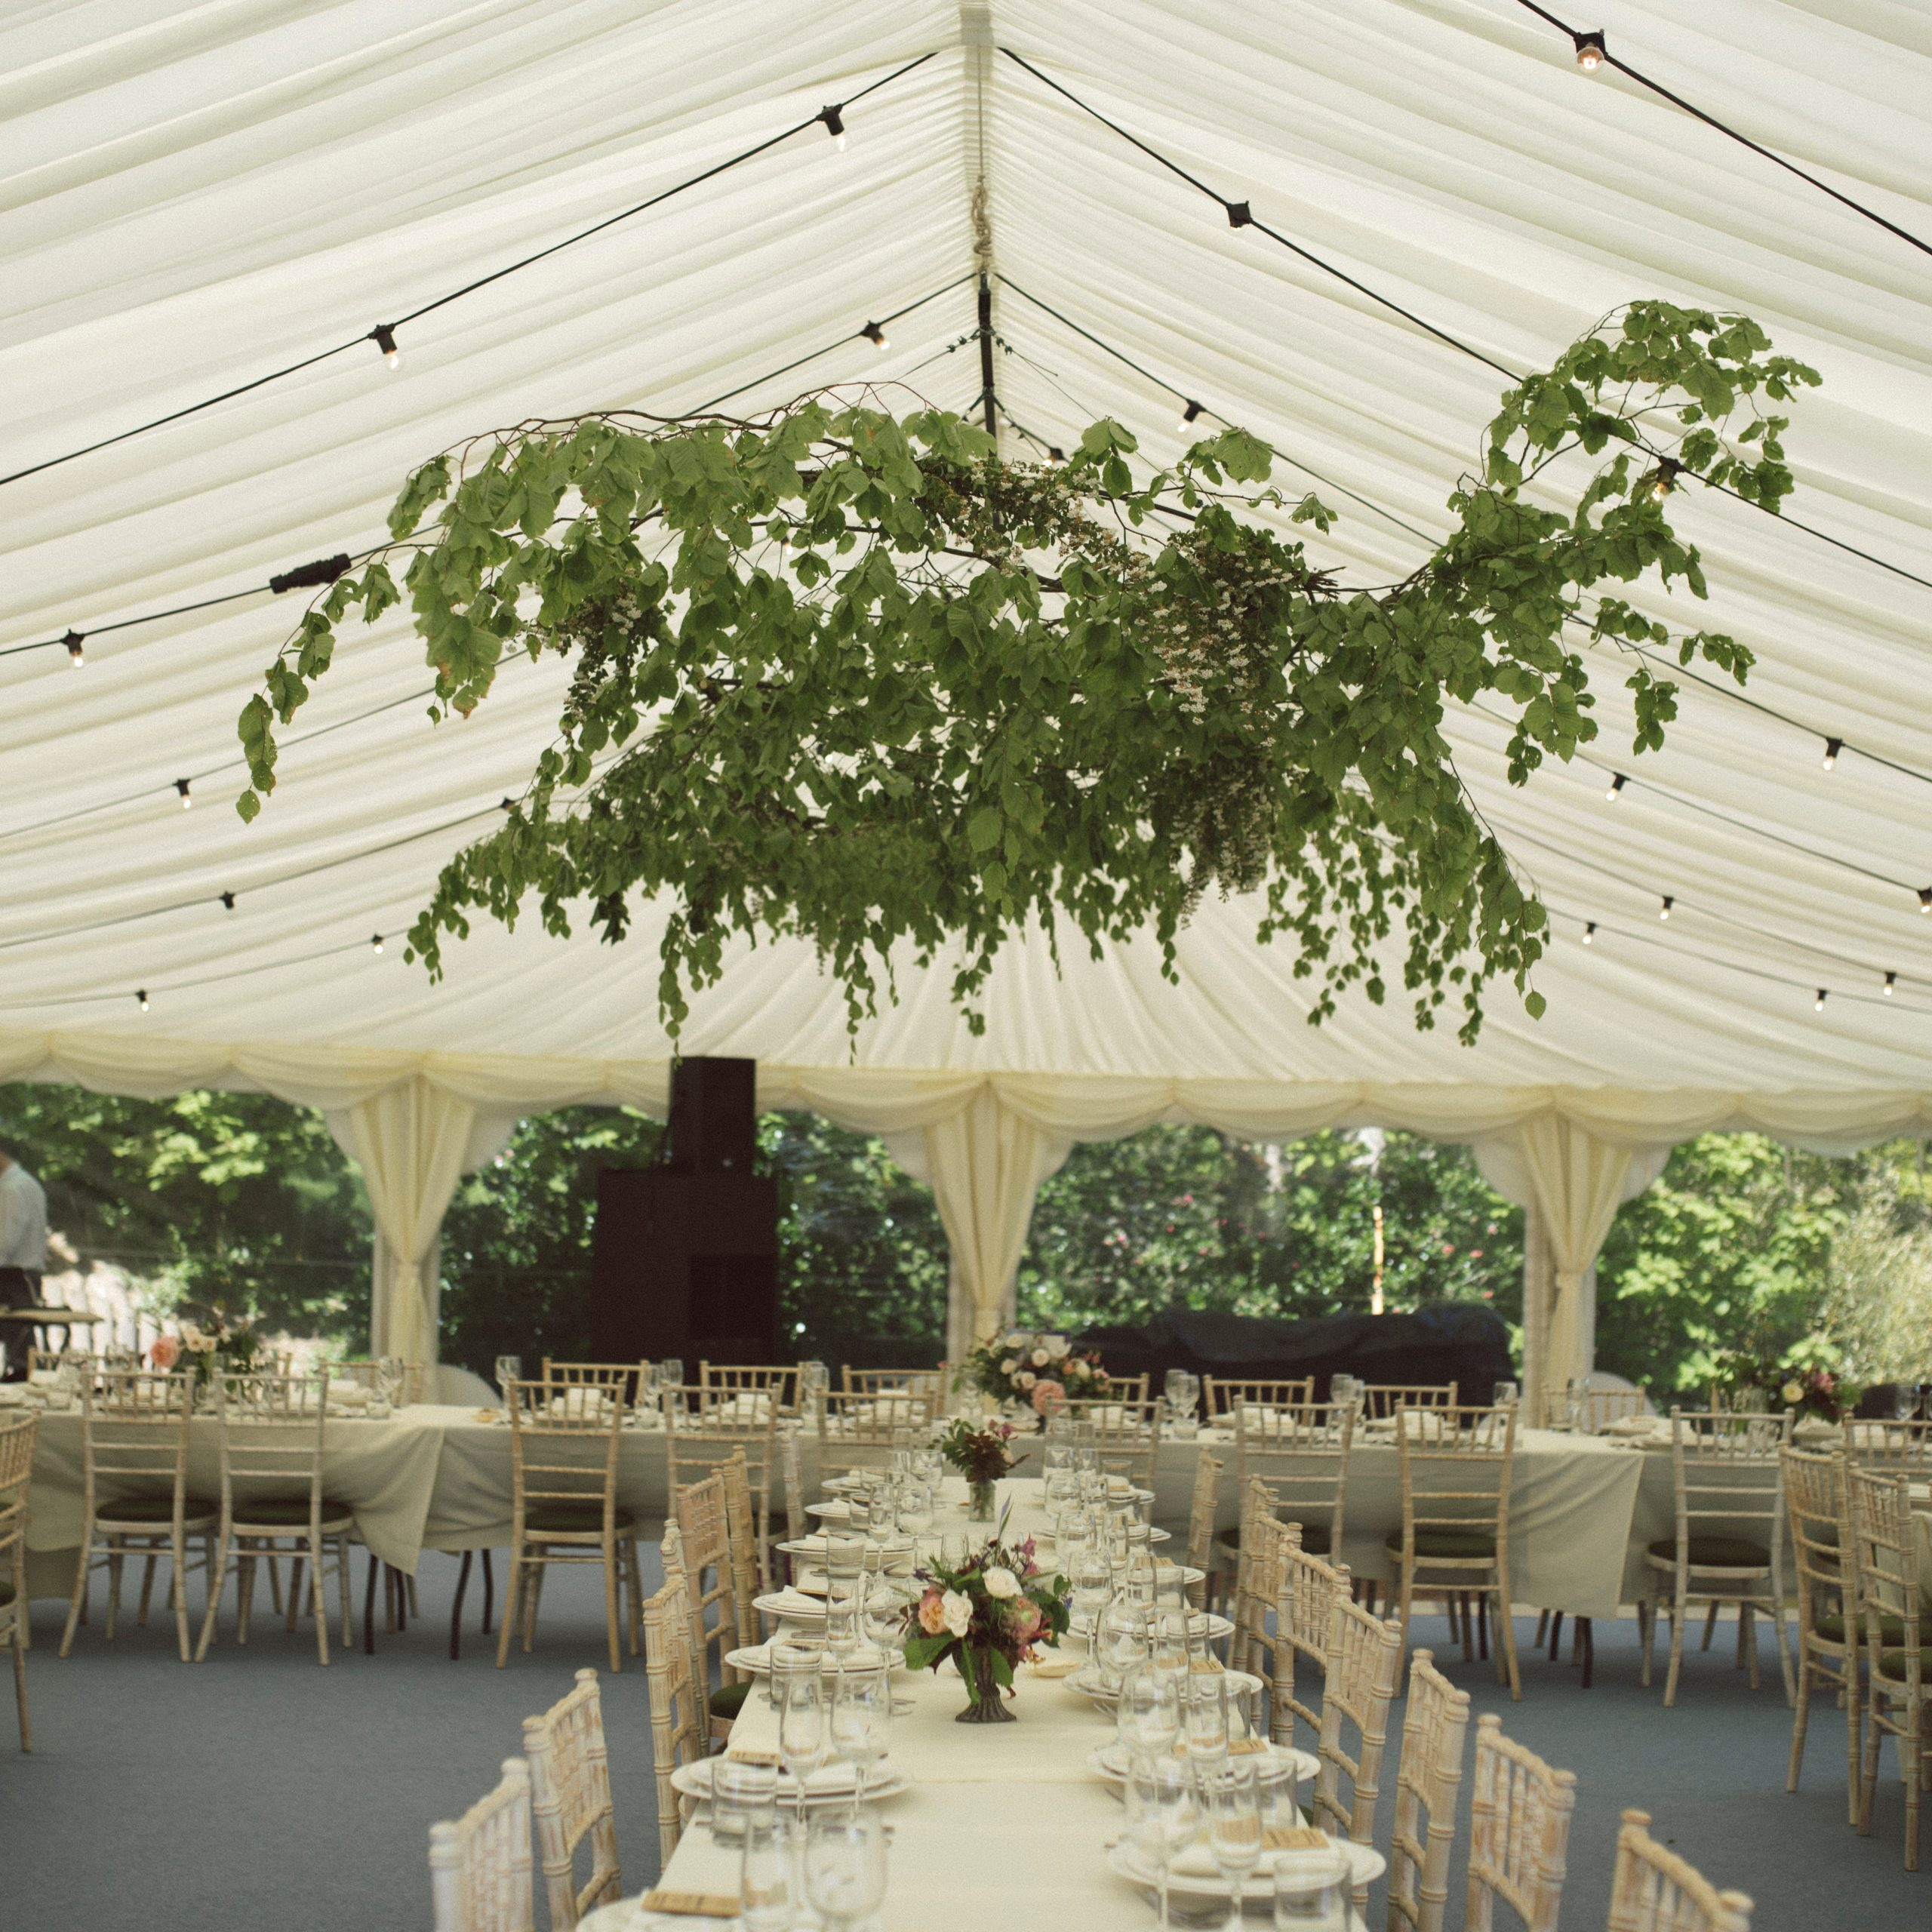 gemma mark 80 scaled - Planning a marquee wedding?